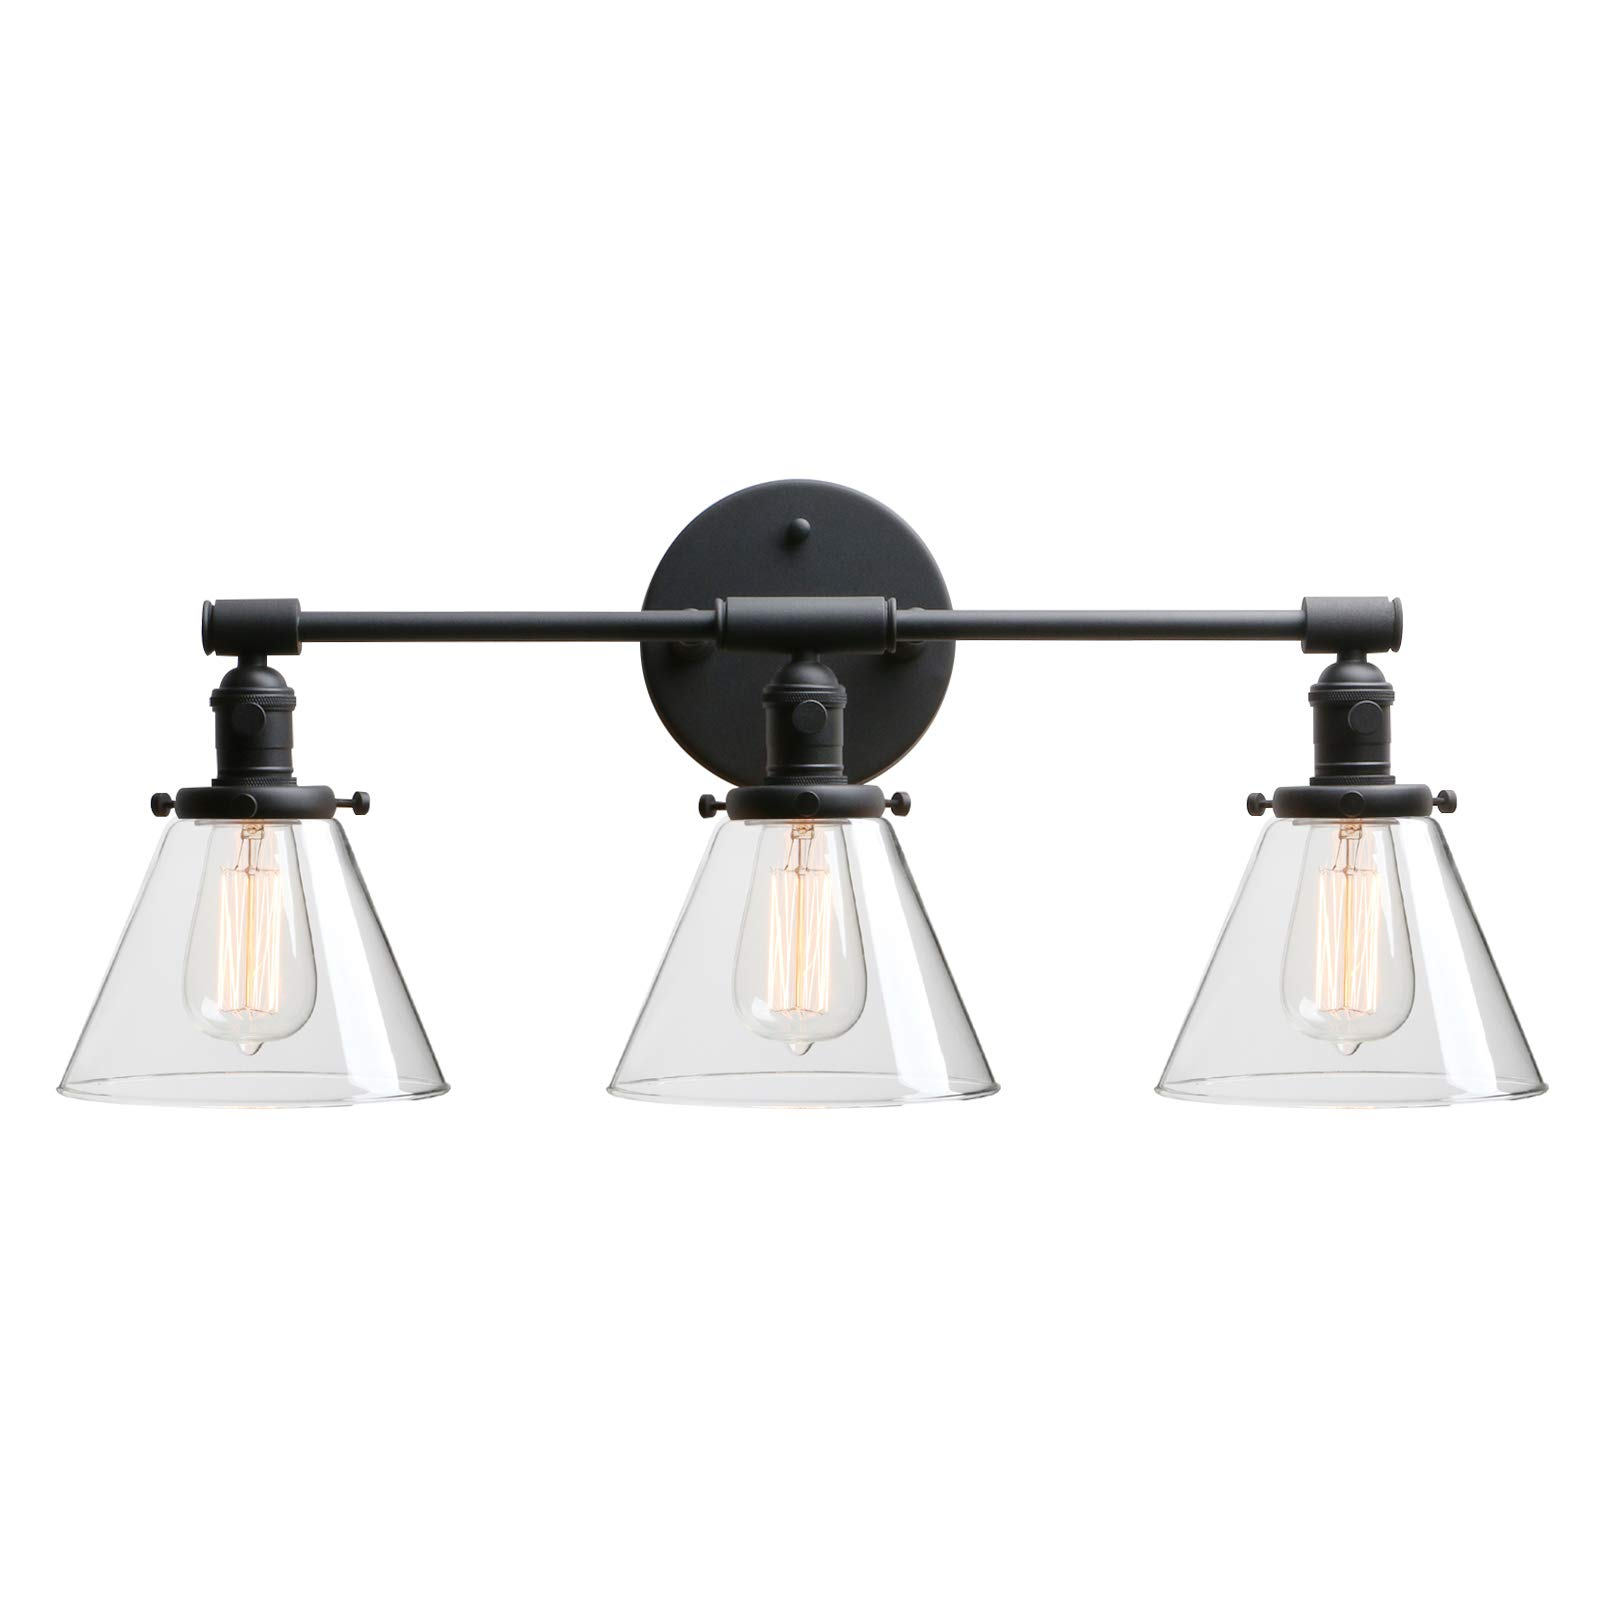 """Phansthy Bathroom Vanity Lamp Black Wall Sconce Light Fixture with 7.3"""" Cone Clear Glass Canopy, Black"""